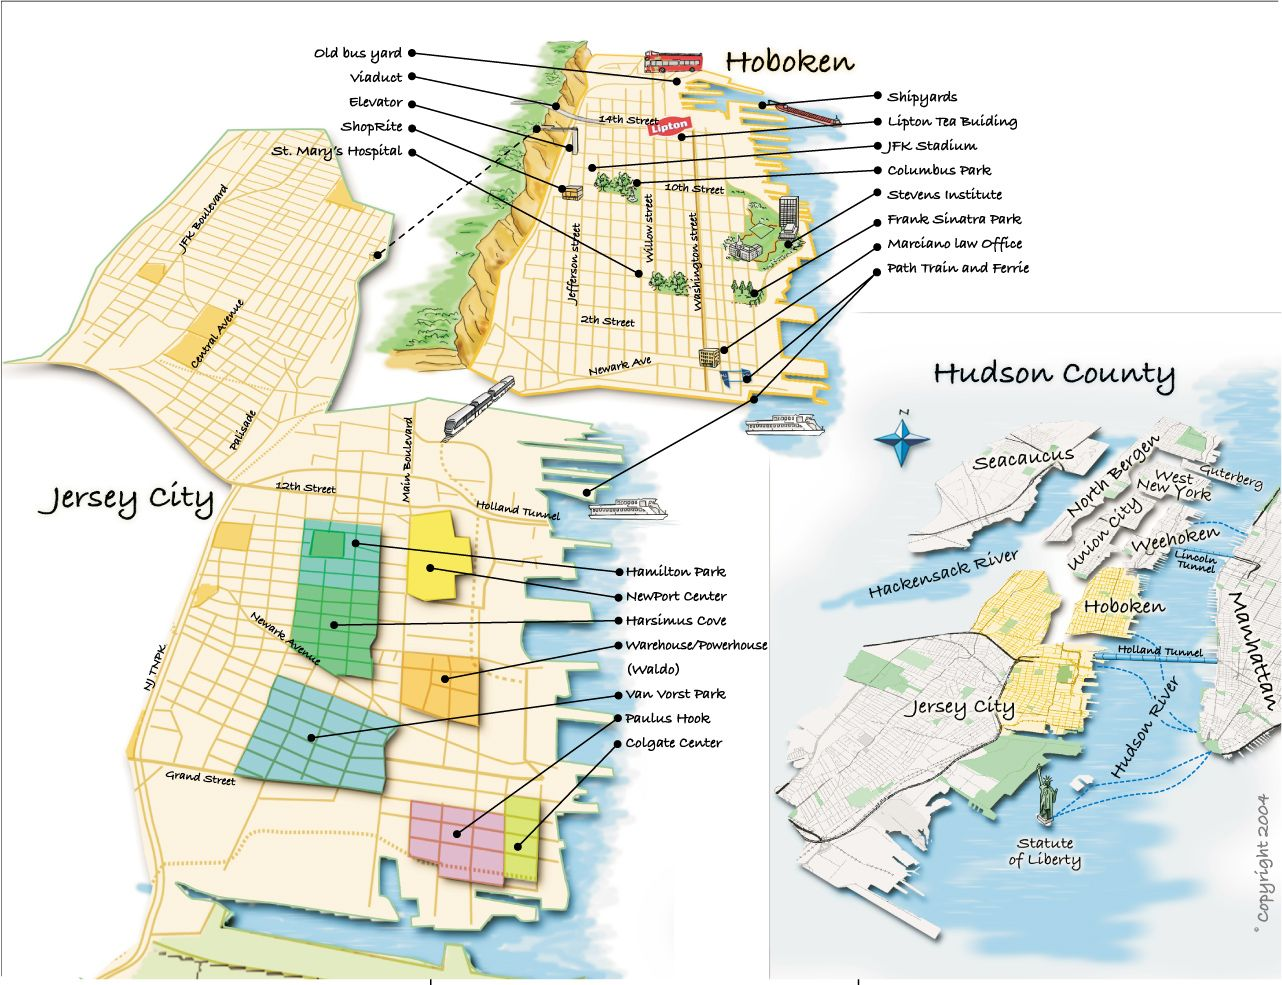 Hoboken Area Map The Many Lives Of Amy Houston Pinterest - New jersey city map